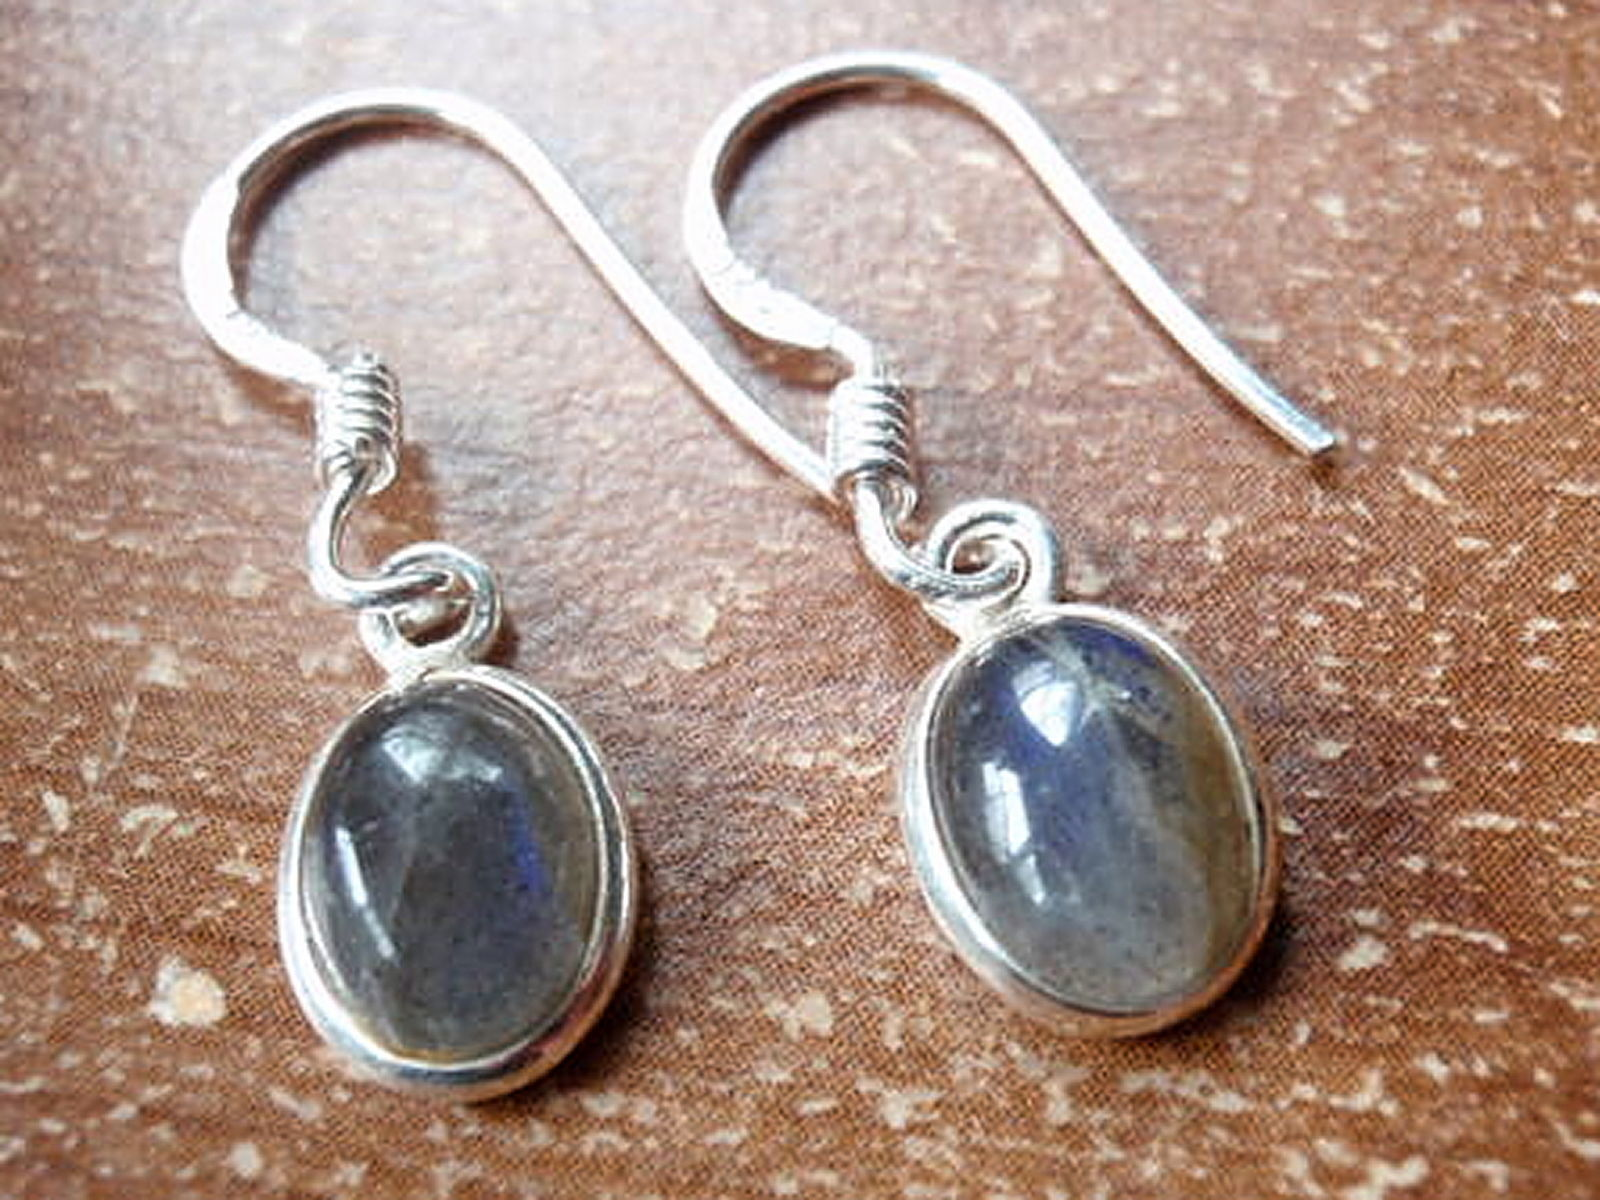 Primary image for Small Labradorite Oval Ellipse 925 Sterling Silver Dangle Earrings New 760p